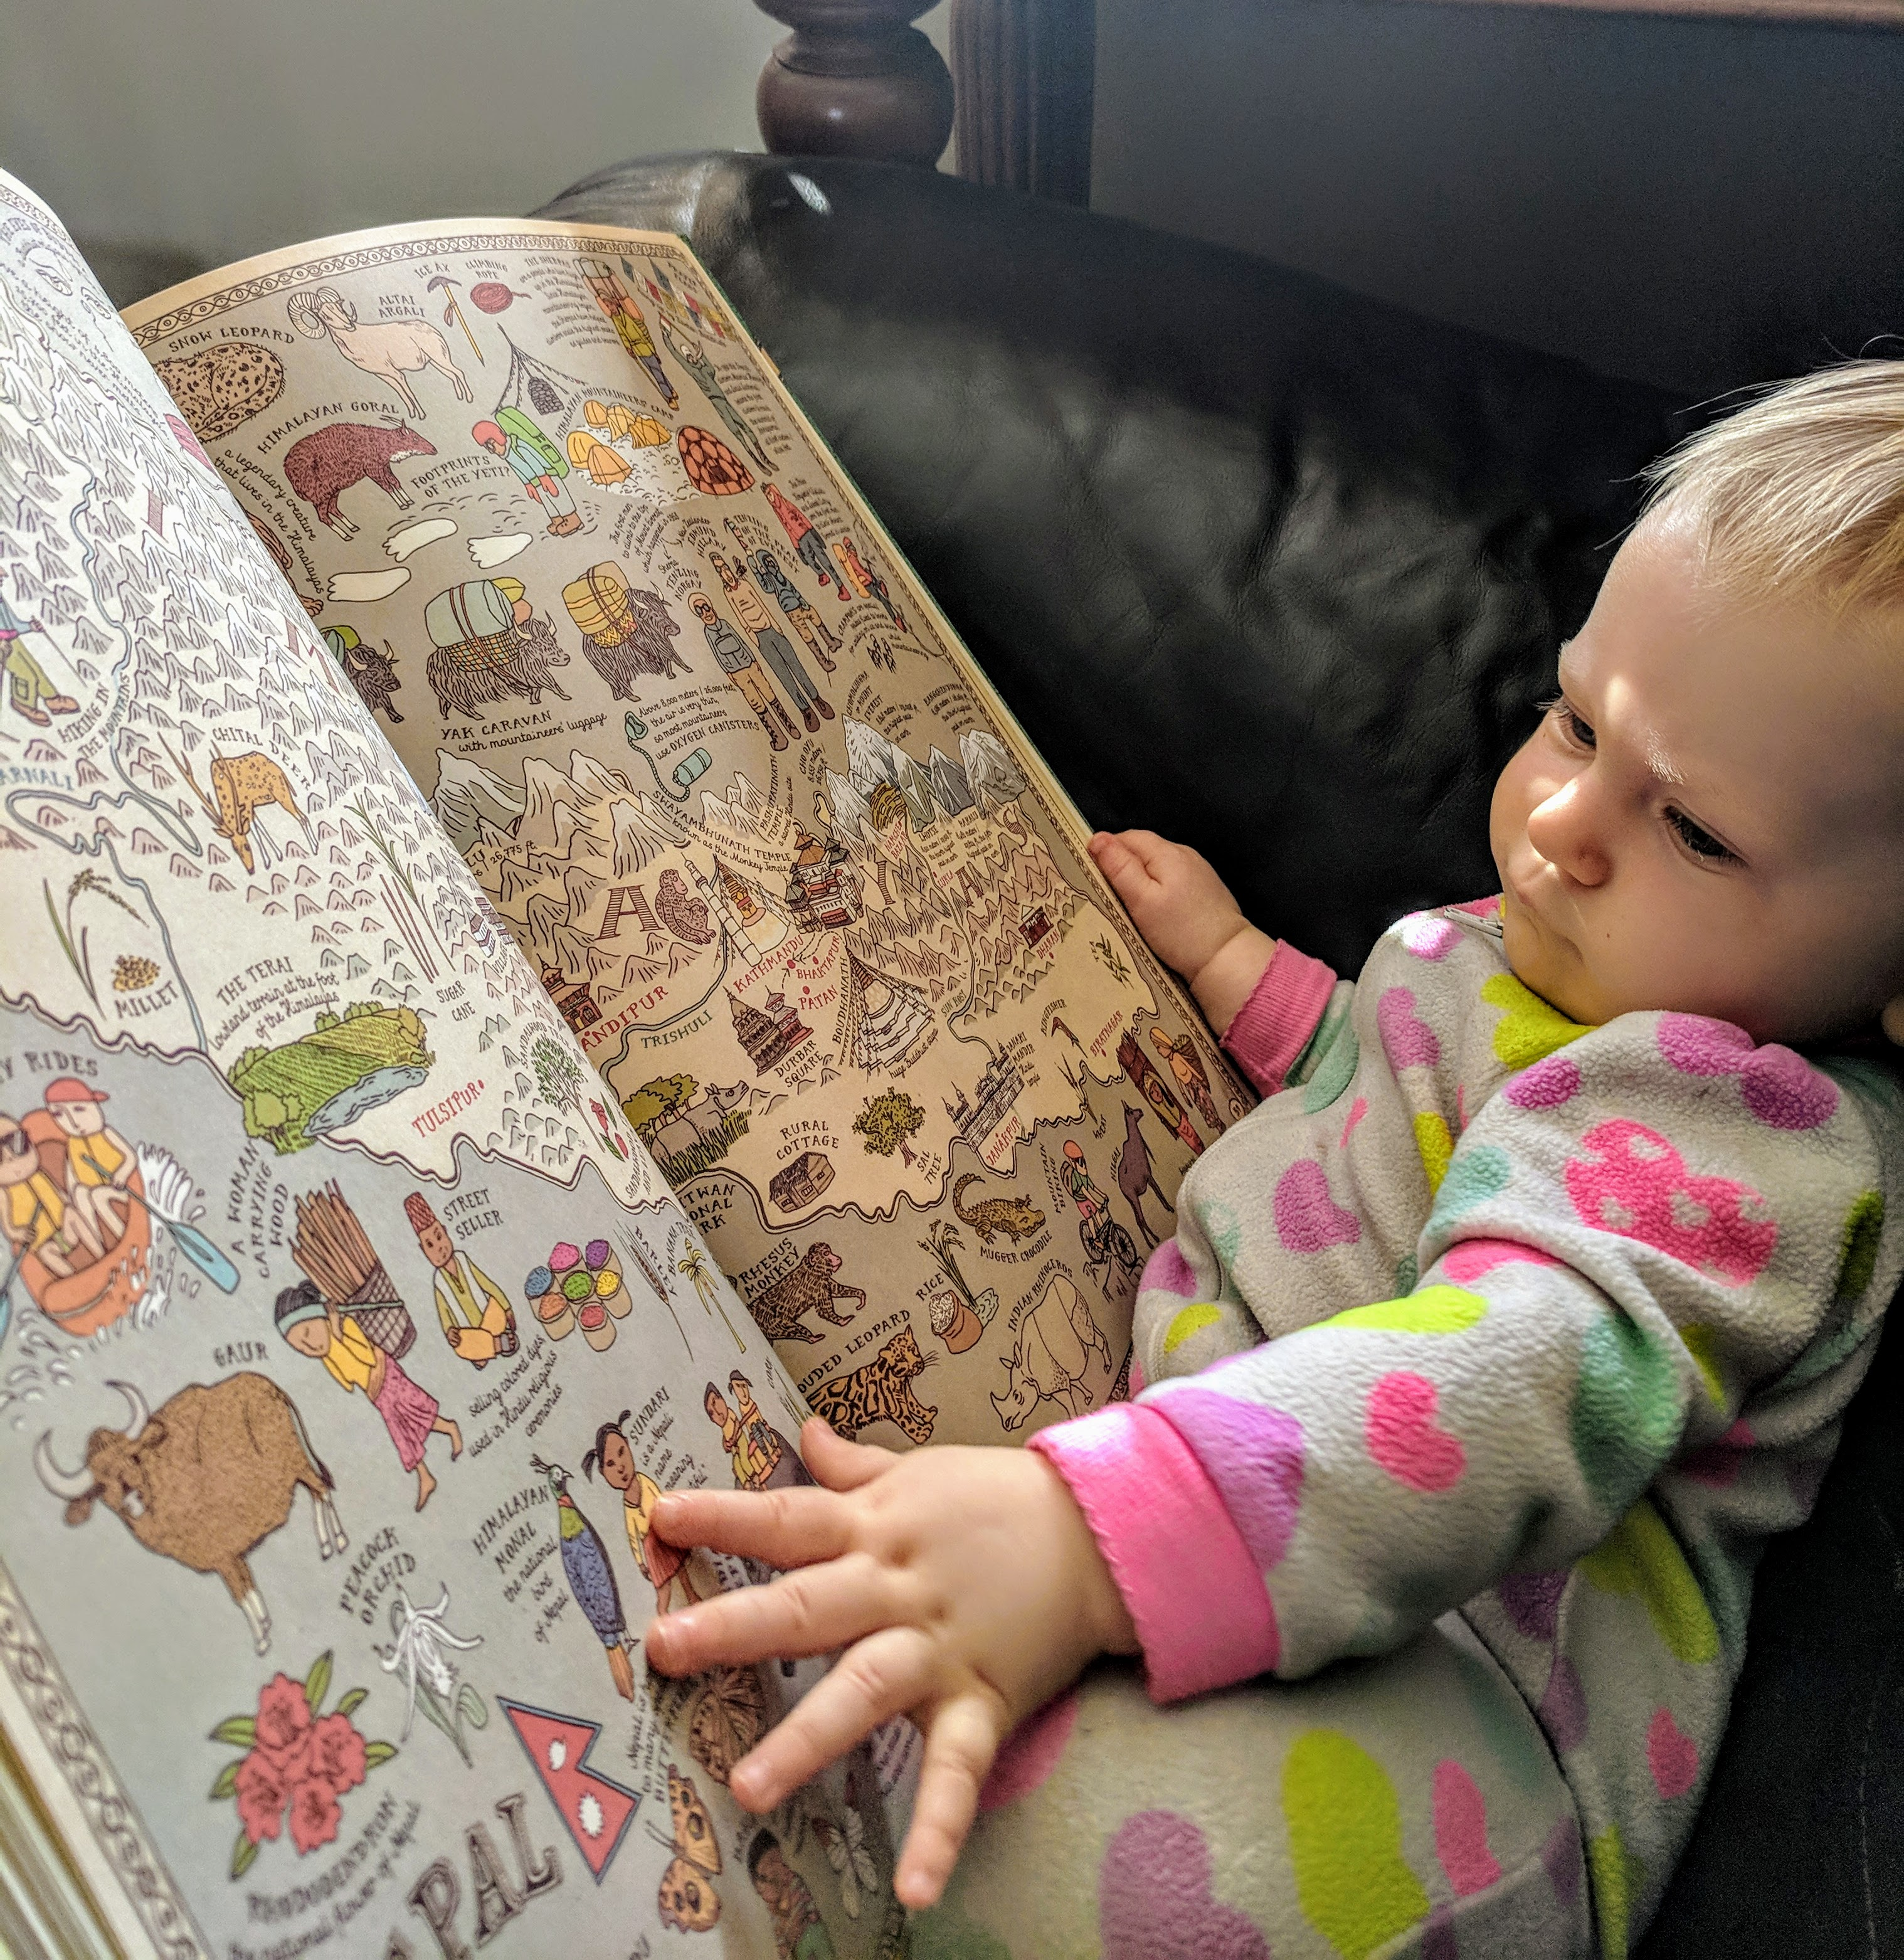 Little girl looking through a map book while sitting on the couch.